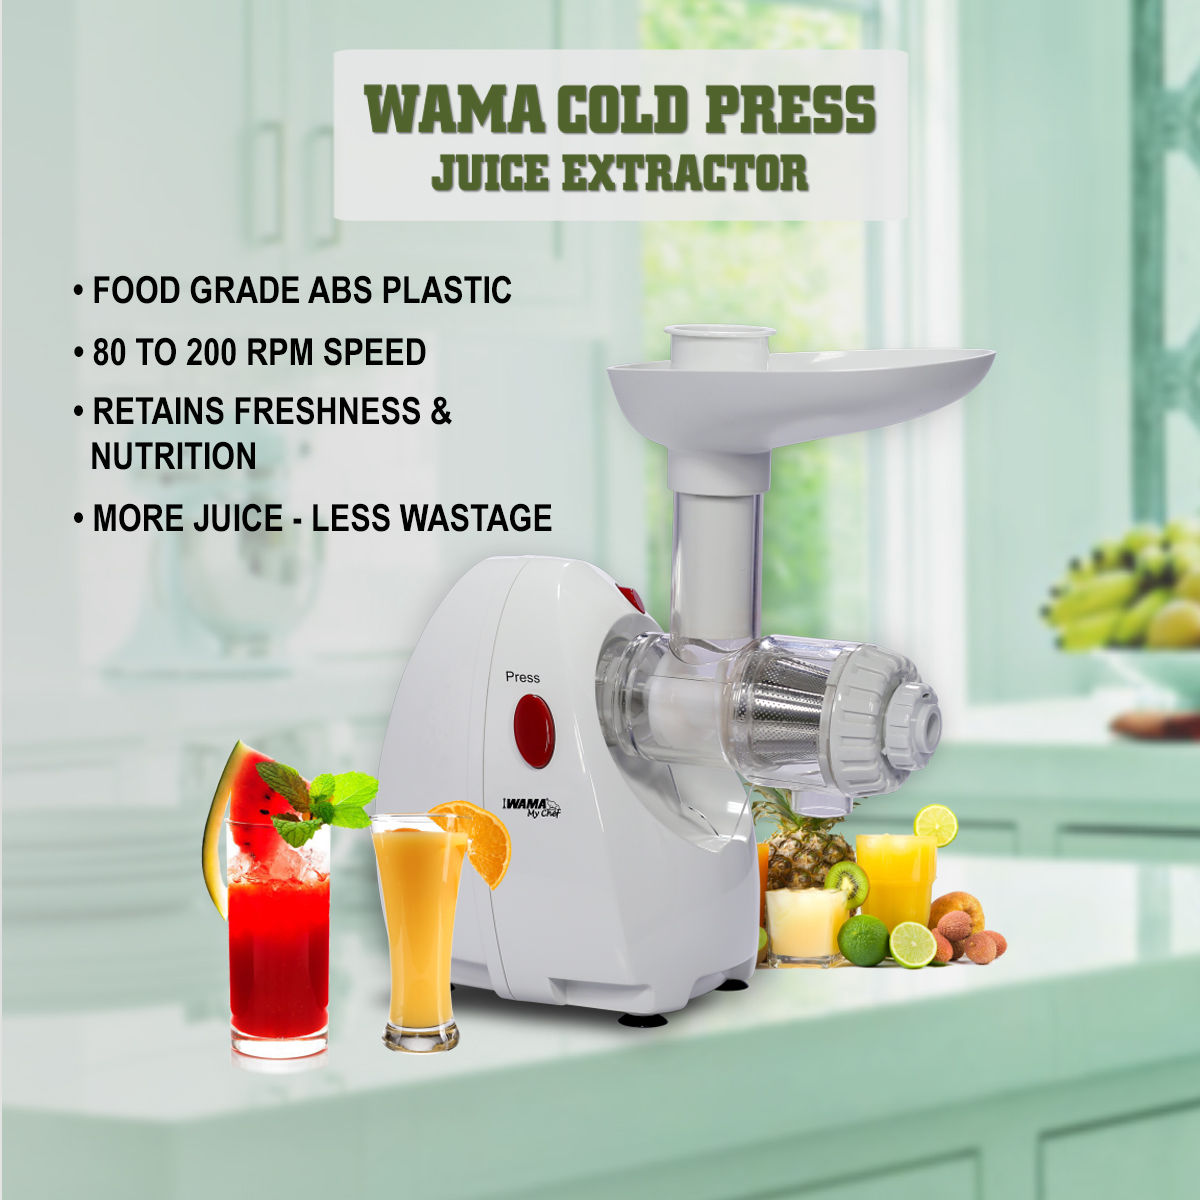 Wonderchef Cold Press Slow Juicer Digital Review : Buy Wama Cold Press Juice Extractor Online at Best Price in India on Naaptol.com